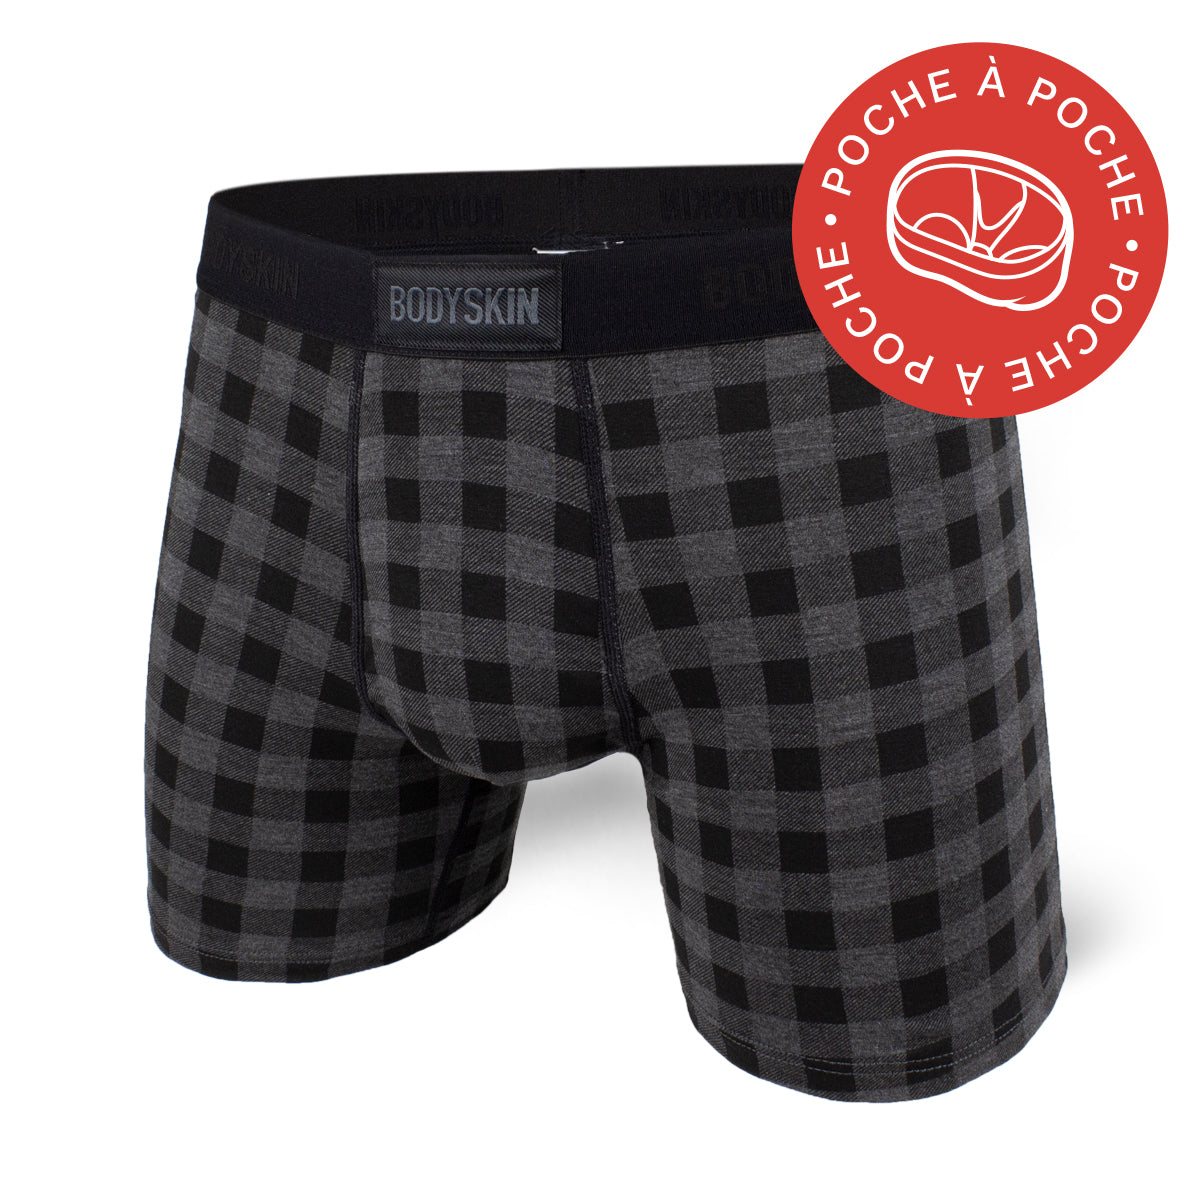 Boxer Bodyskin Lucky avec poche check black